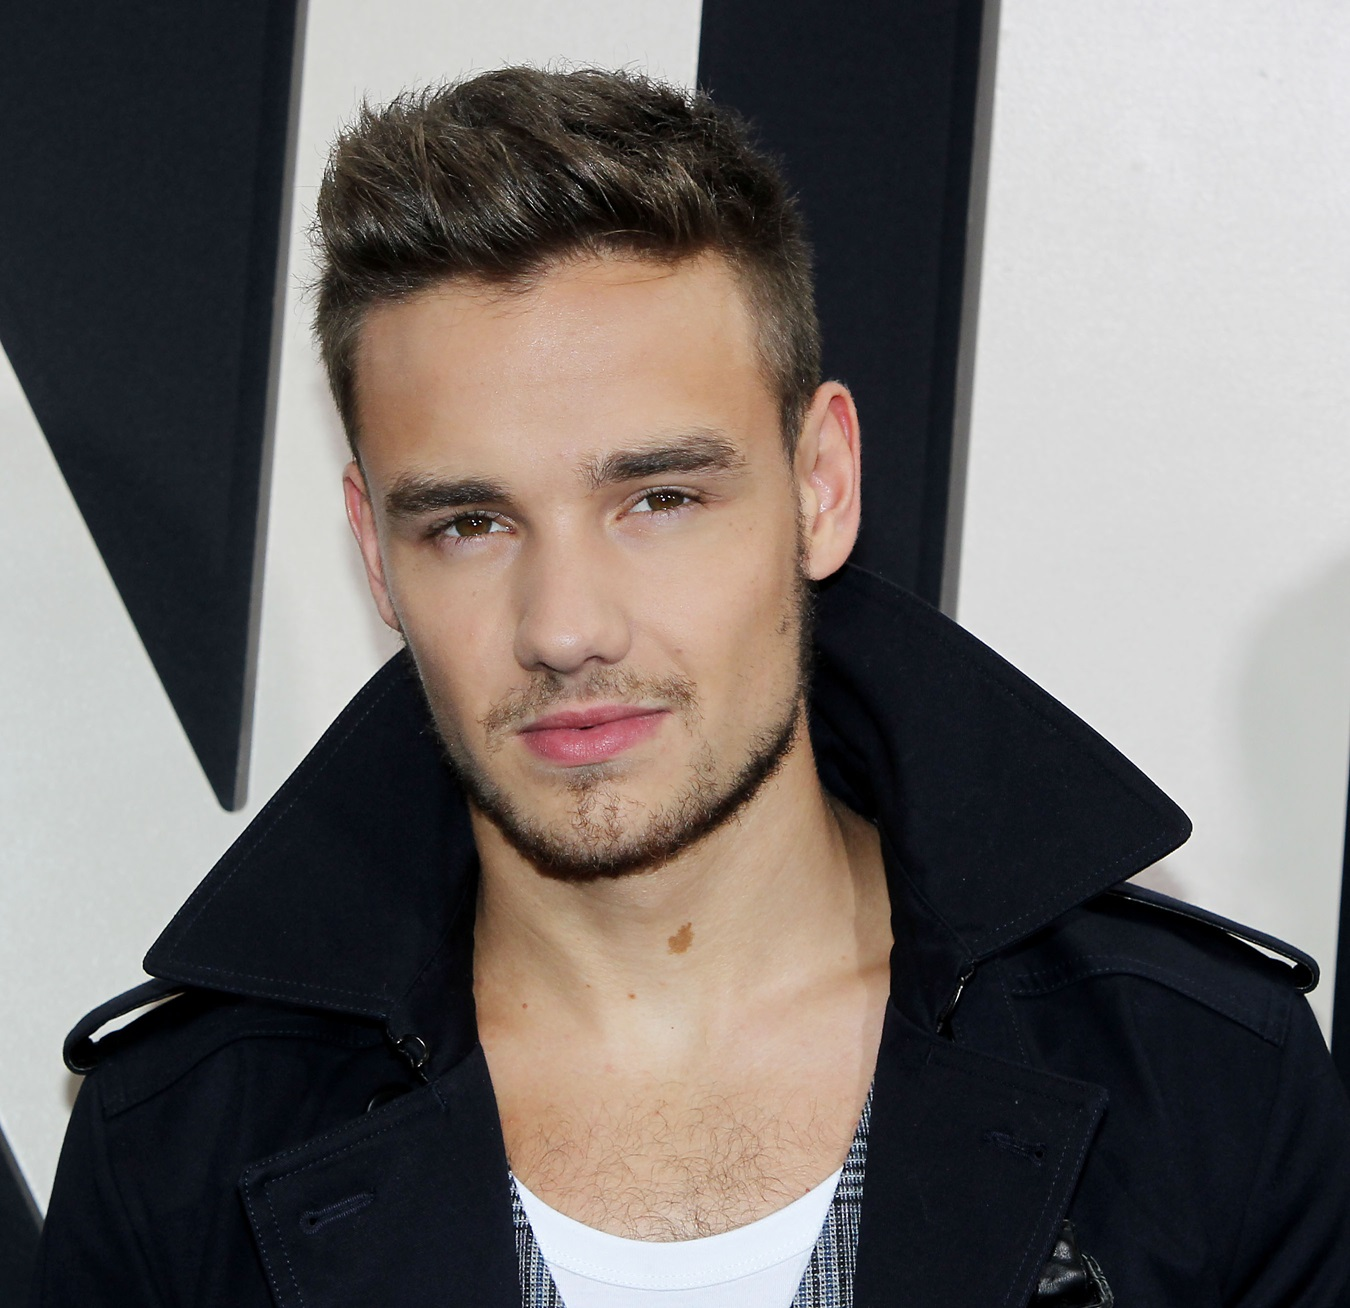 1000+ images about Liam Payne on Pinterest | Liam James ...